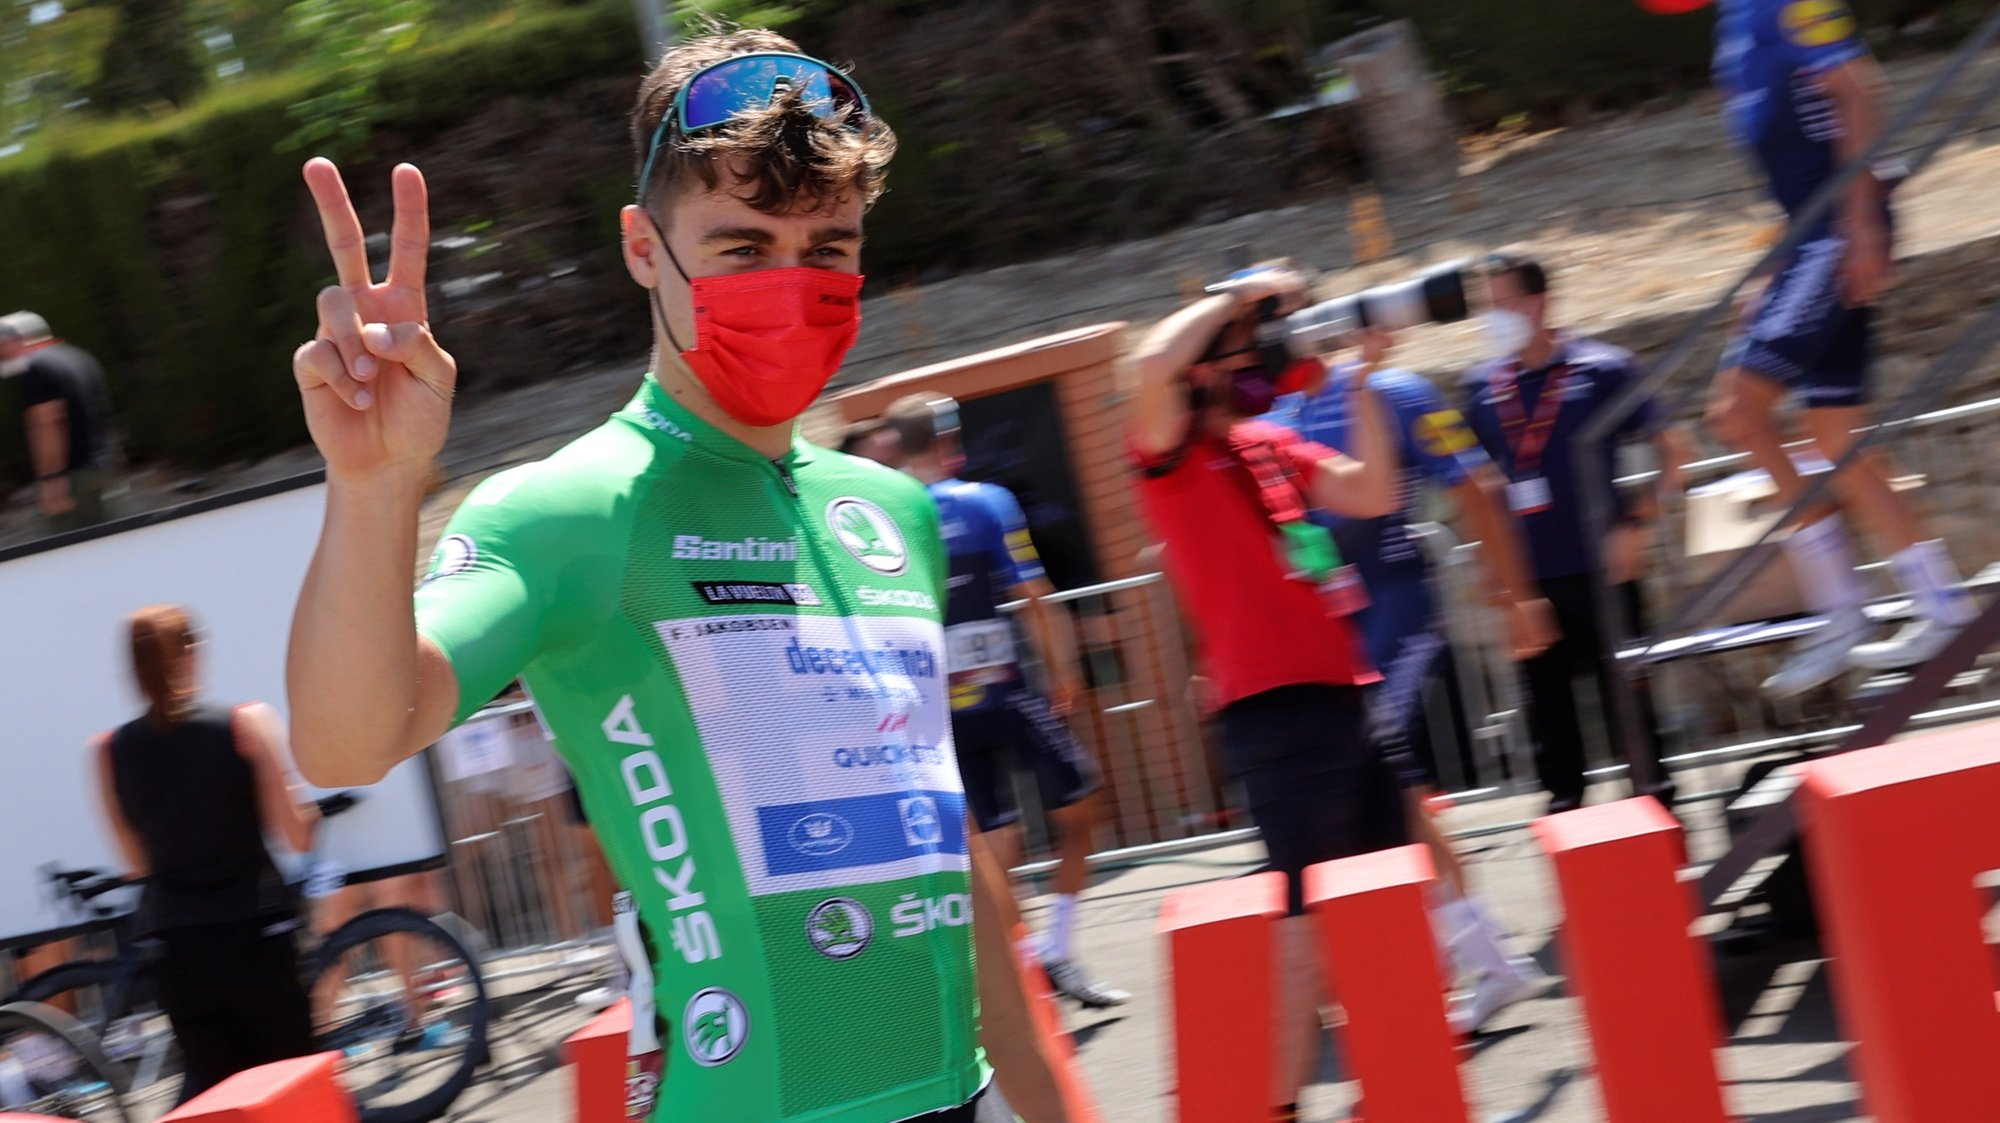 epa09428839 Dutch Fabio Jakobsen, Deceuninck-Quick Step, is seen before the start of the 11th stage of the Spanish Cycling Vuelta in Antequera, a 133.6km-long race between Antequera and Valdepenas de Jaen, Spain, 25 August 2021.  EPA/Manuel Bruque